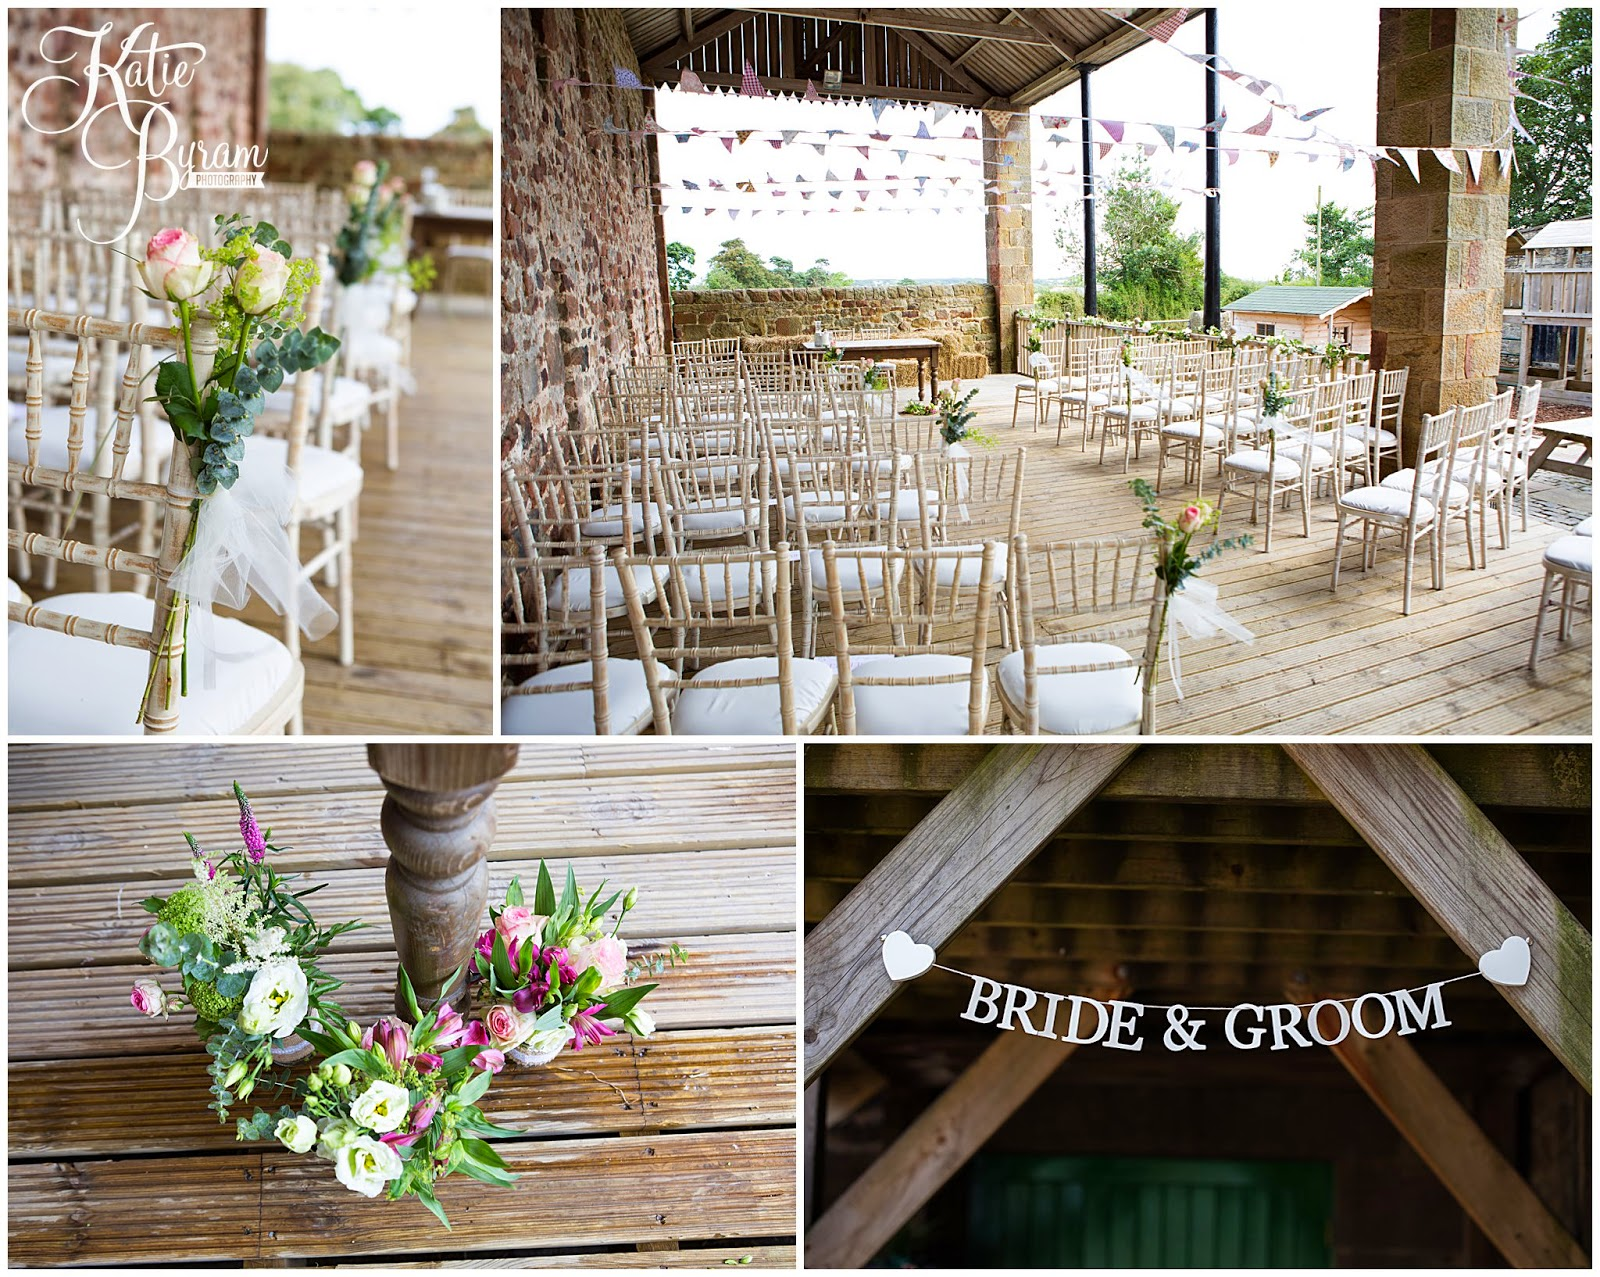 Katie Byram Photography: Rustic & Fun Wedding At High